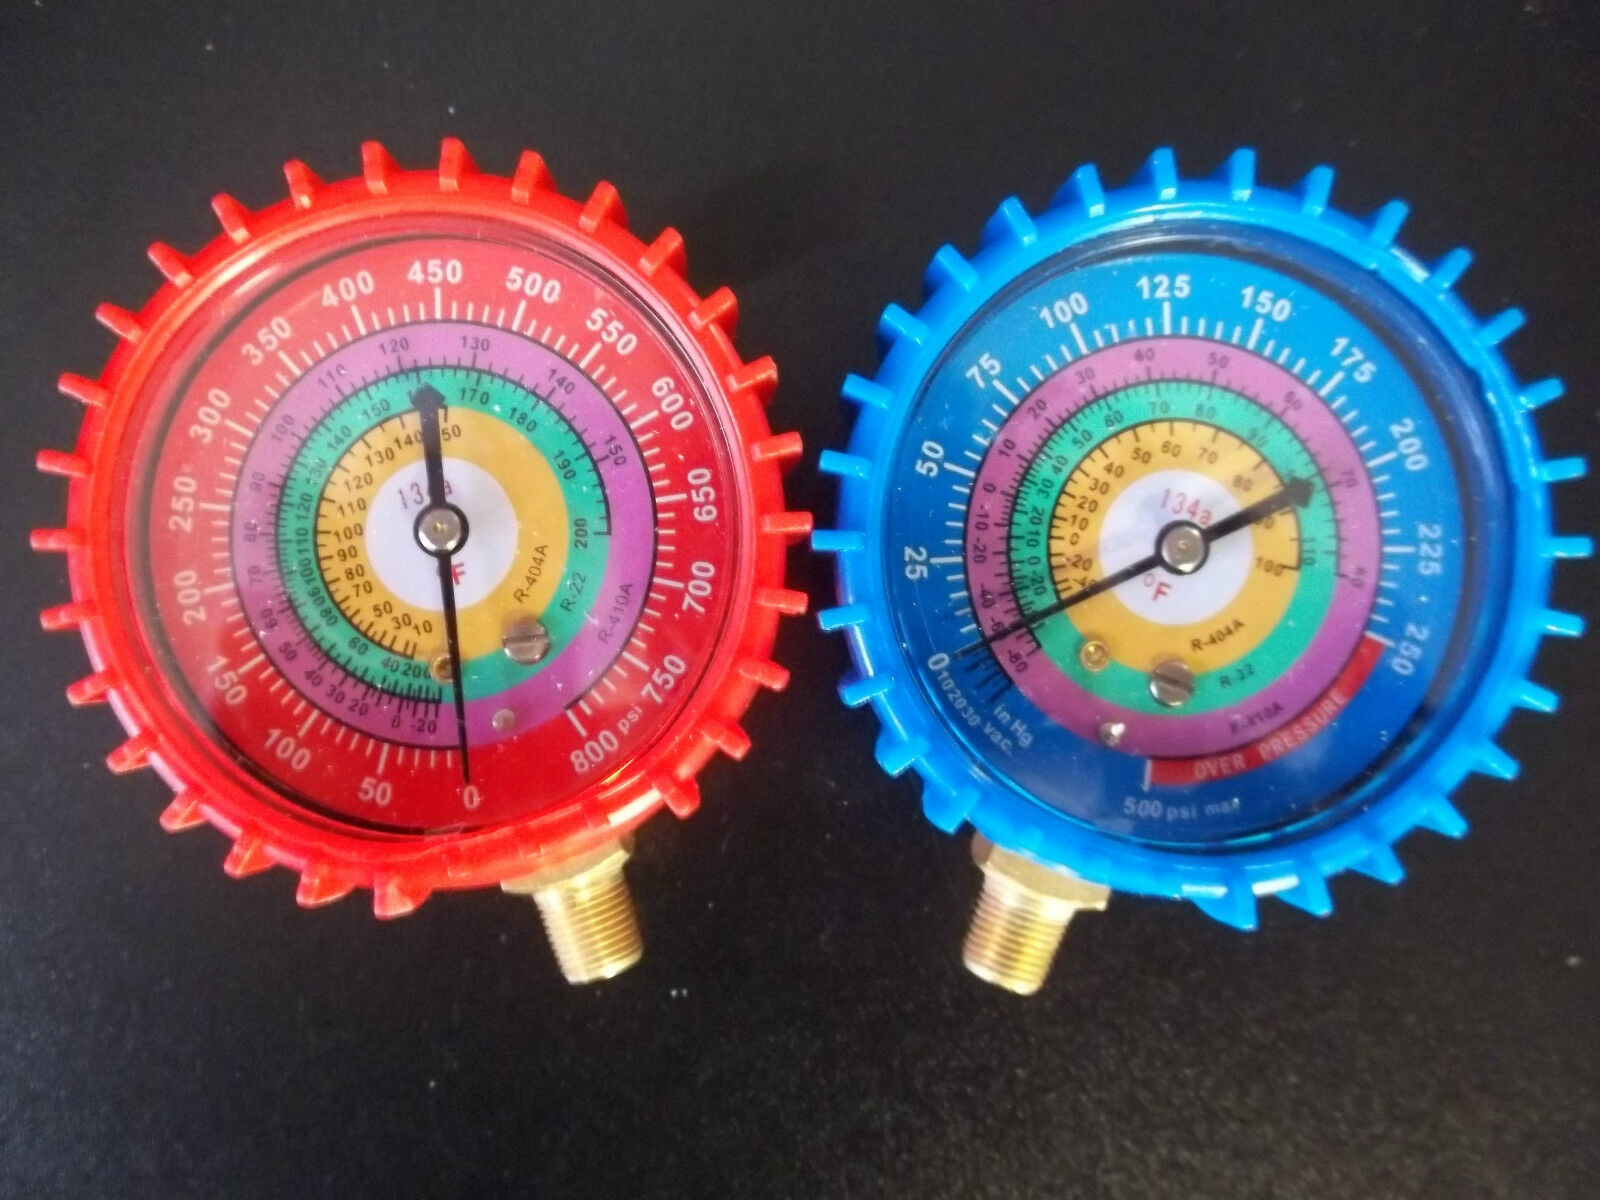 Yellow Jacket,uniweld Stylereplacement Gauge W/antishock Cover 410a R22 R404a on sale